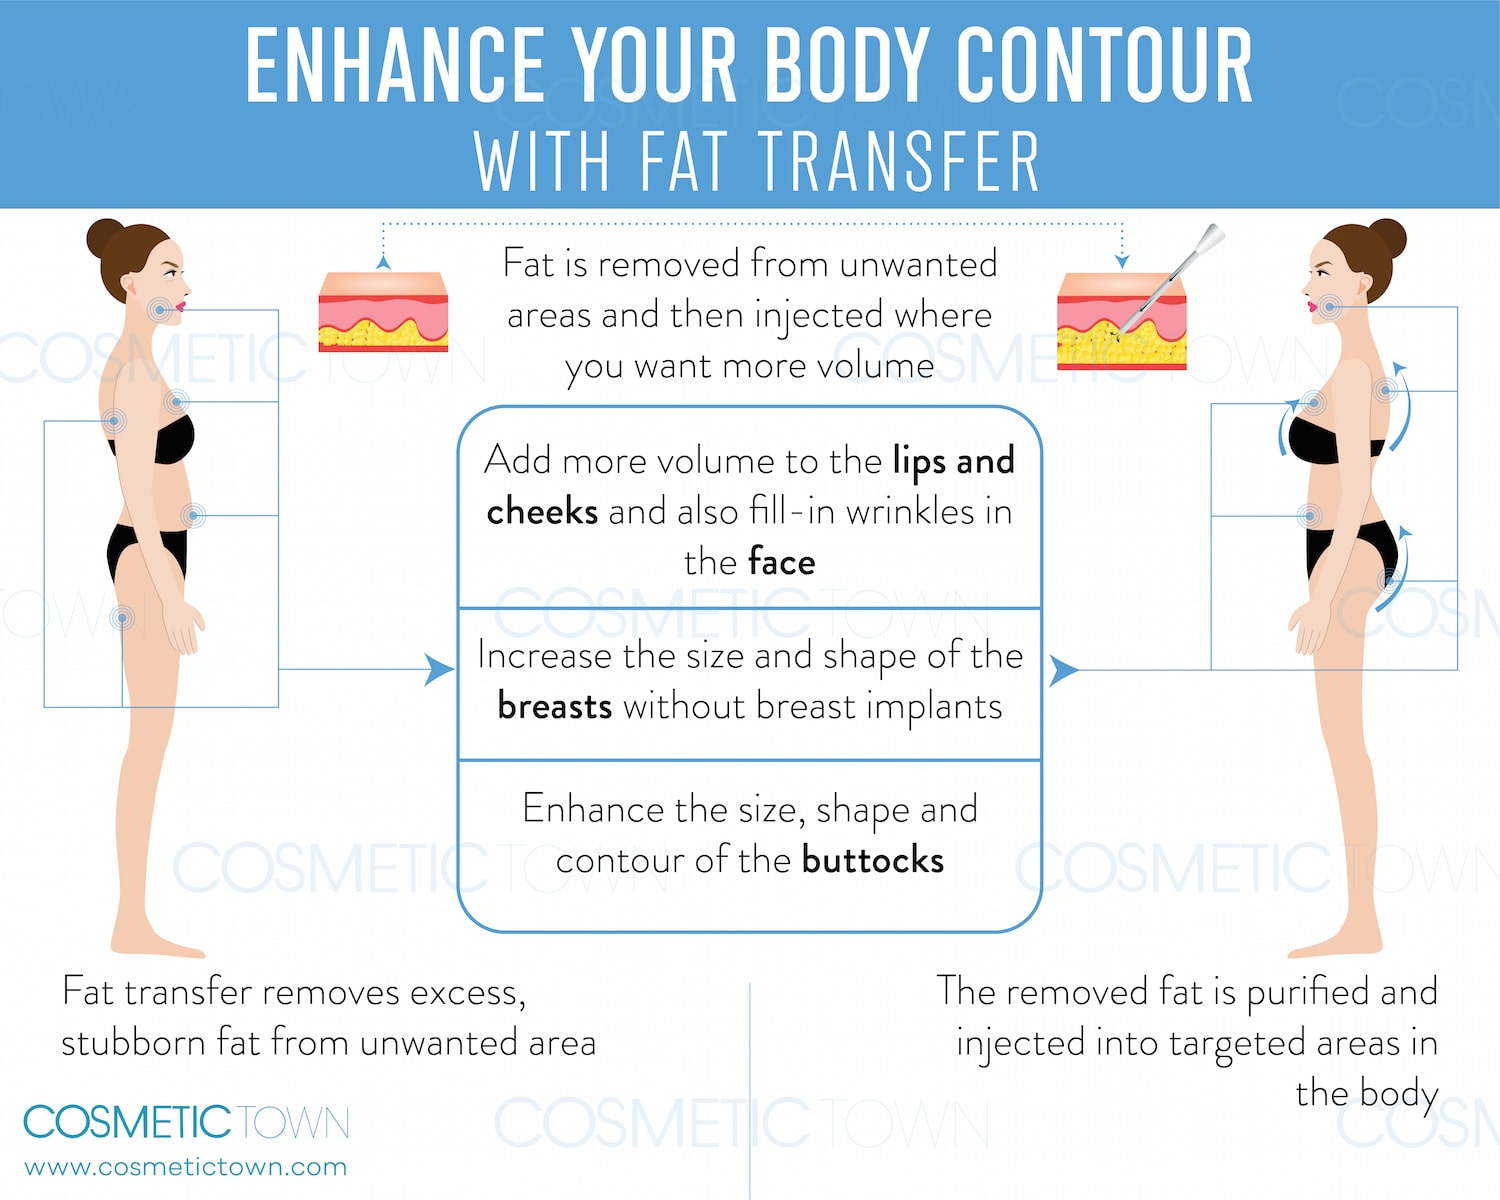 Enhance your body with fat transfer